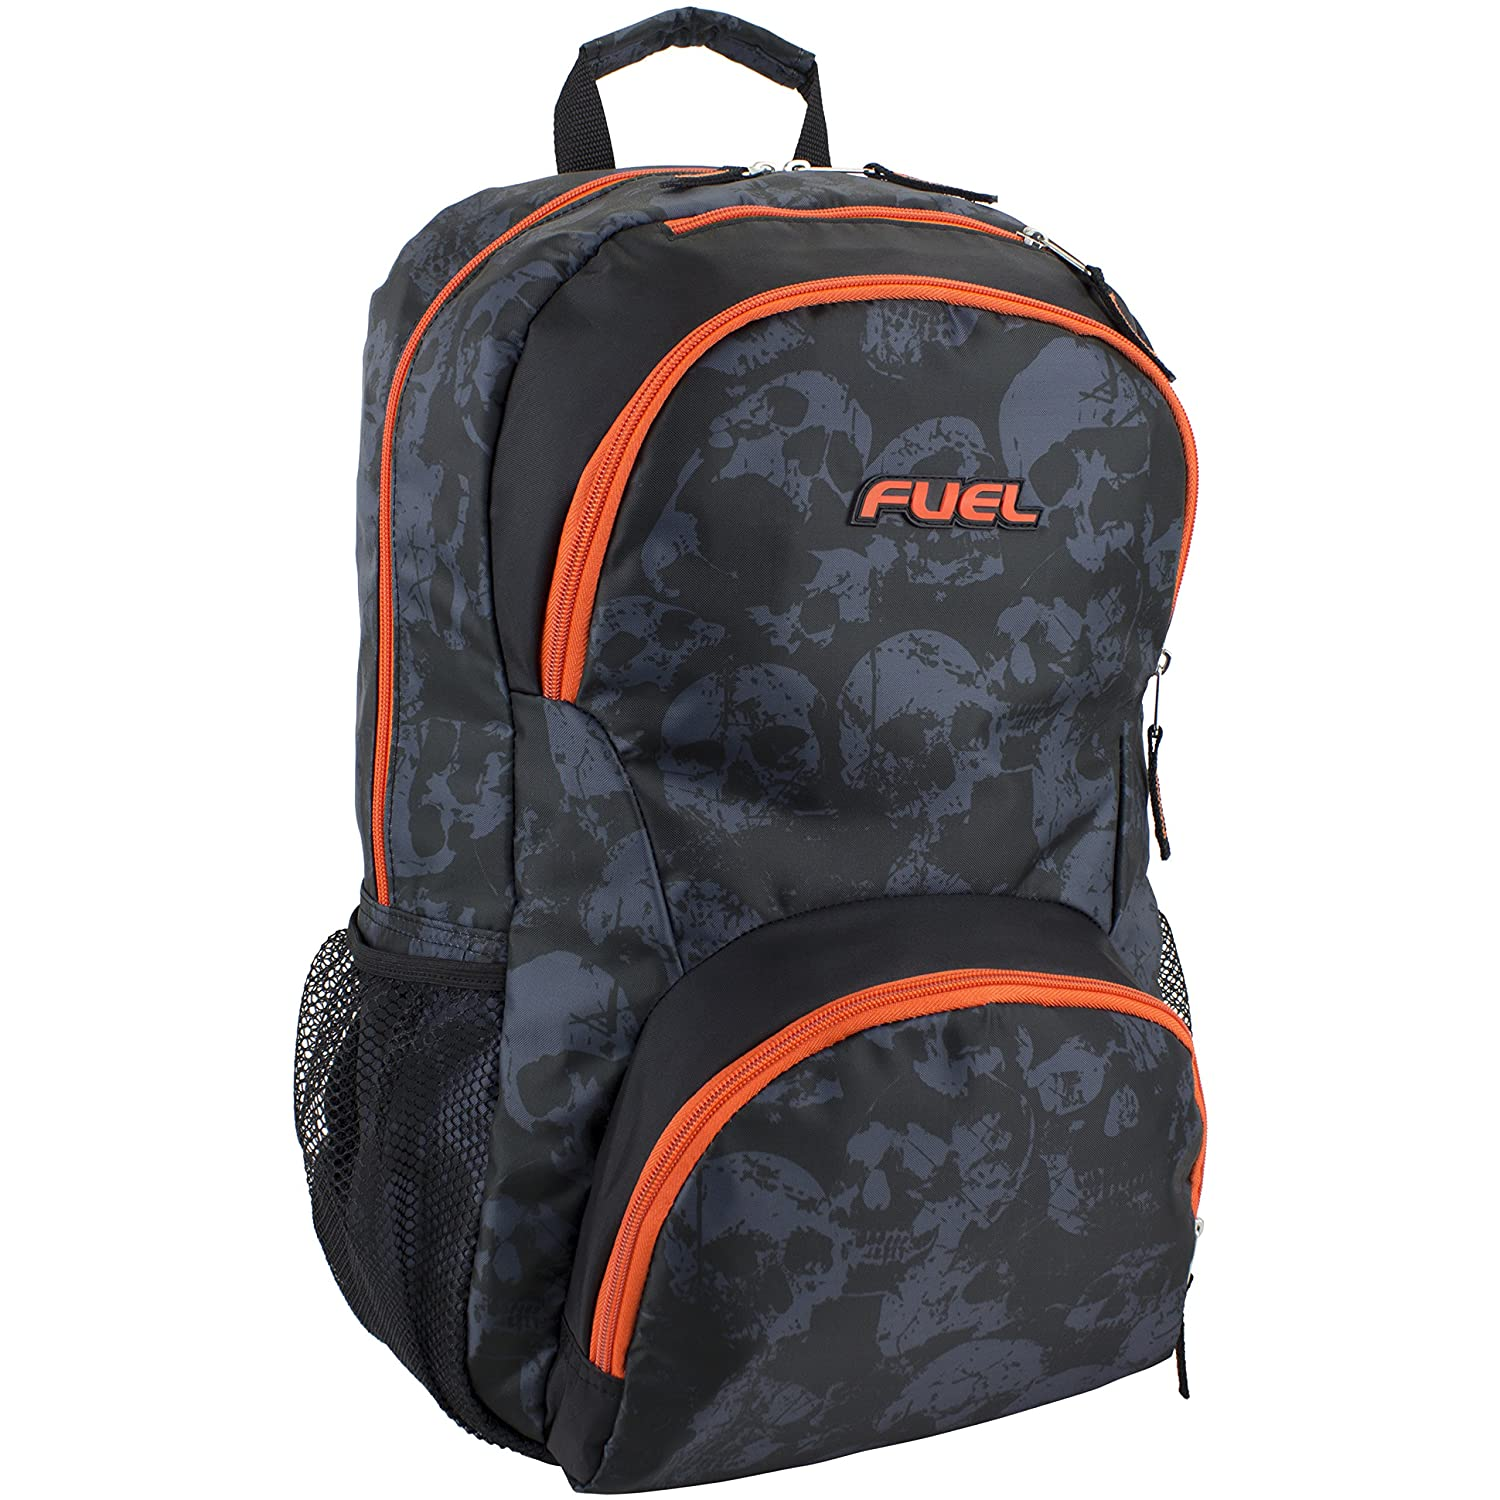 Amazon.com | Fuel Valor Everyday Backpack with Interior Tech Sleeve, Black/Skull Print with Orange Trim | Casual Daypacks